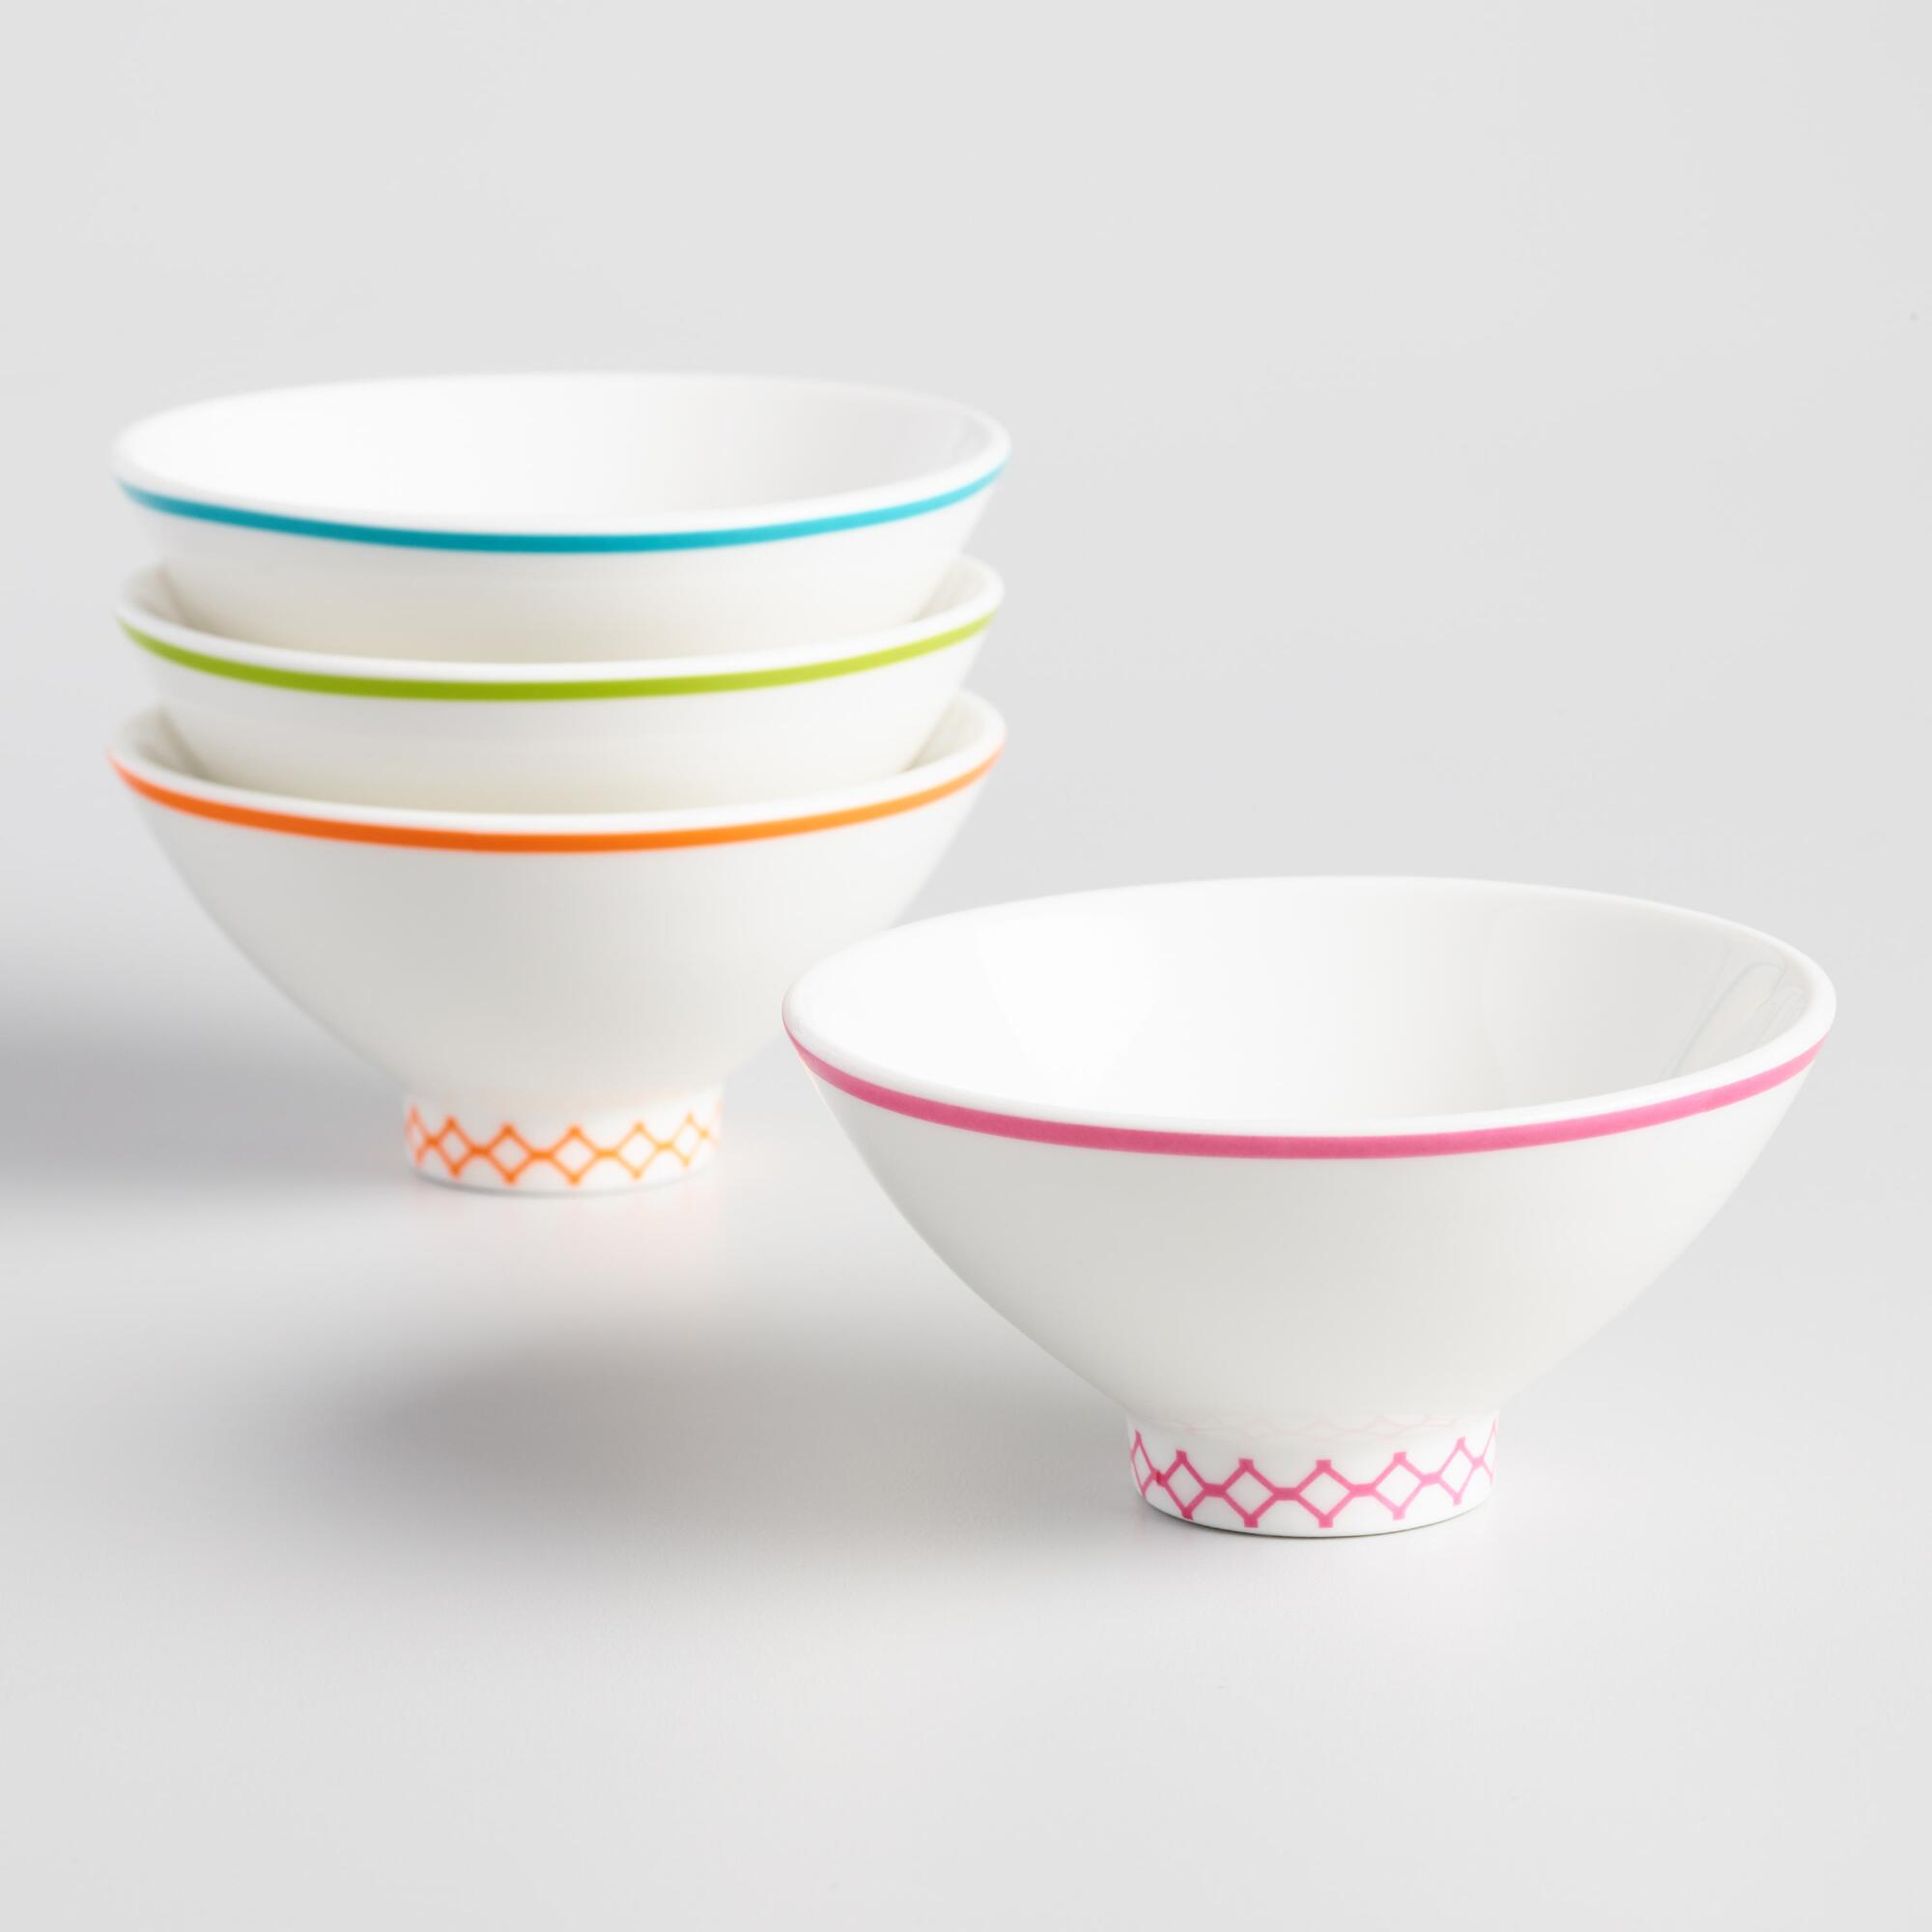 White Footed Porcelain Dynasty Rice Bowls Set Of 4 by World Market